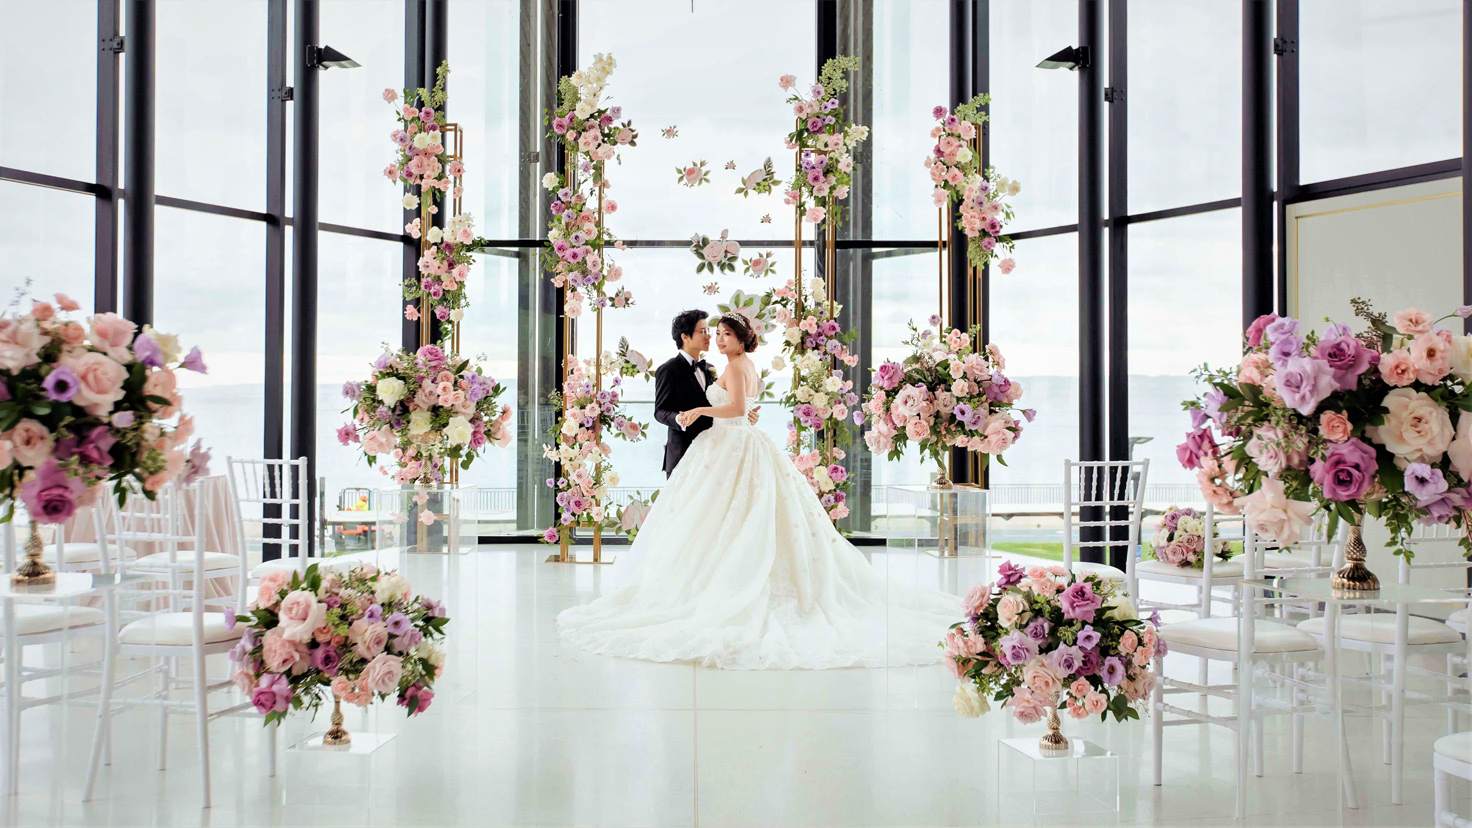 Wedding Decorations & Centerpieces Toronto | Bouquets ...